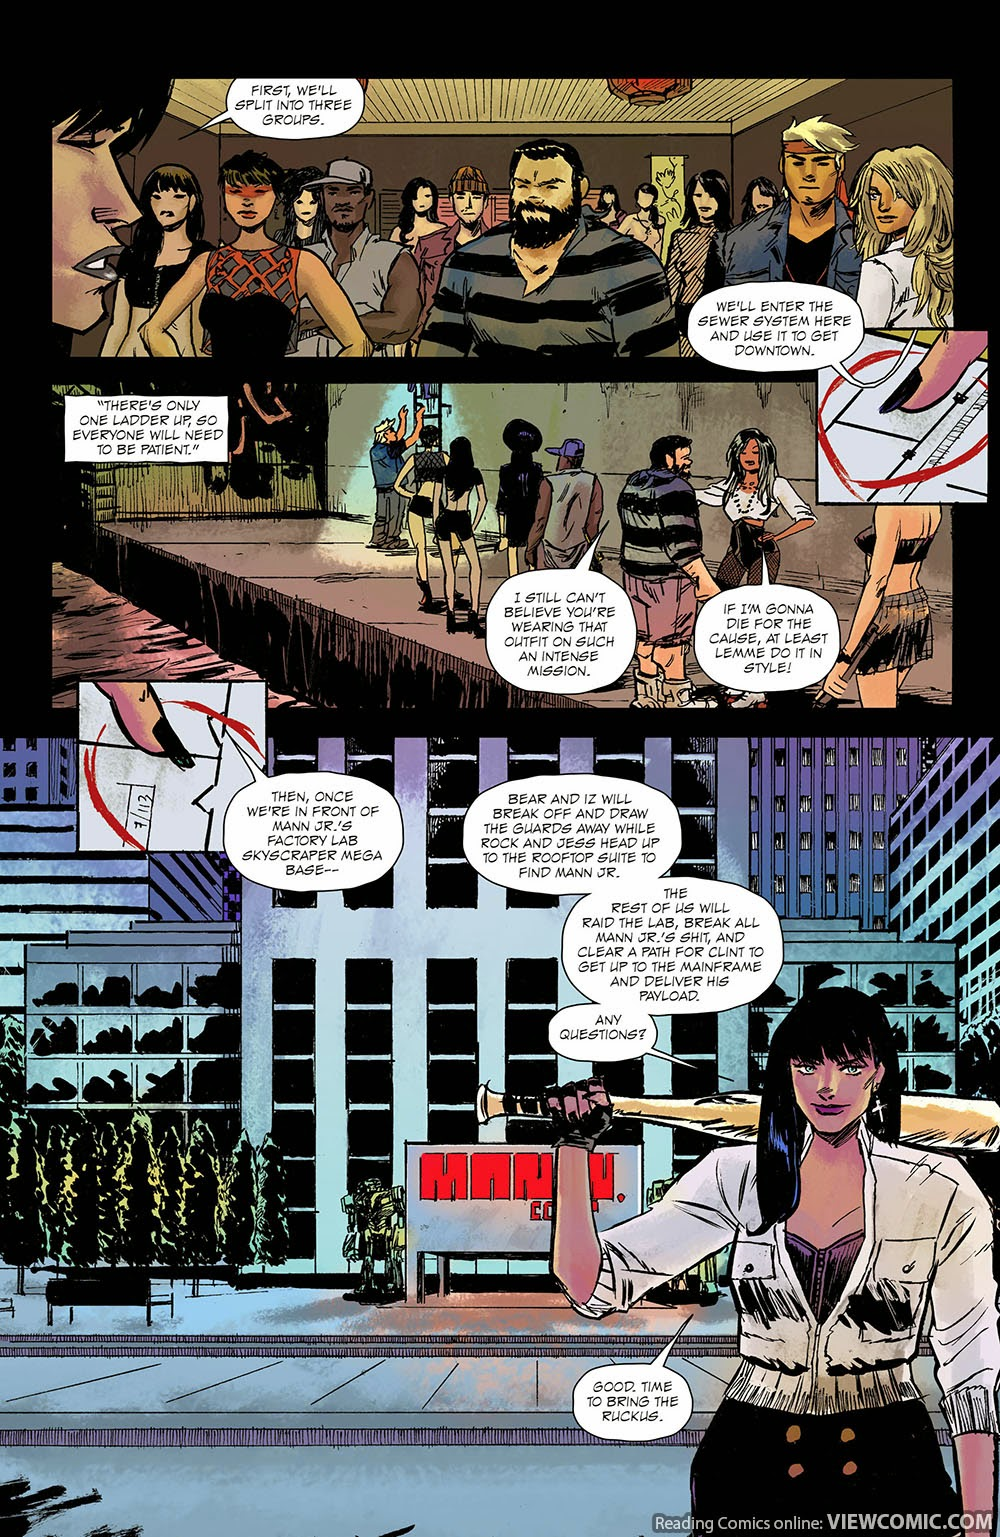 Burn the Orphanage – Reign of Terror 004 (2014) | Viewcomic